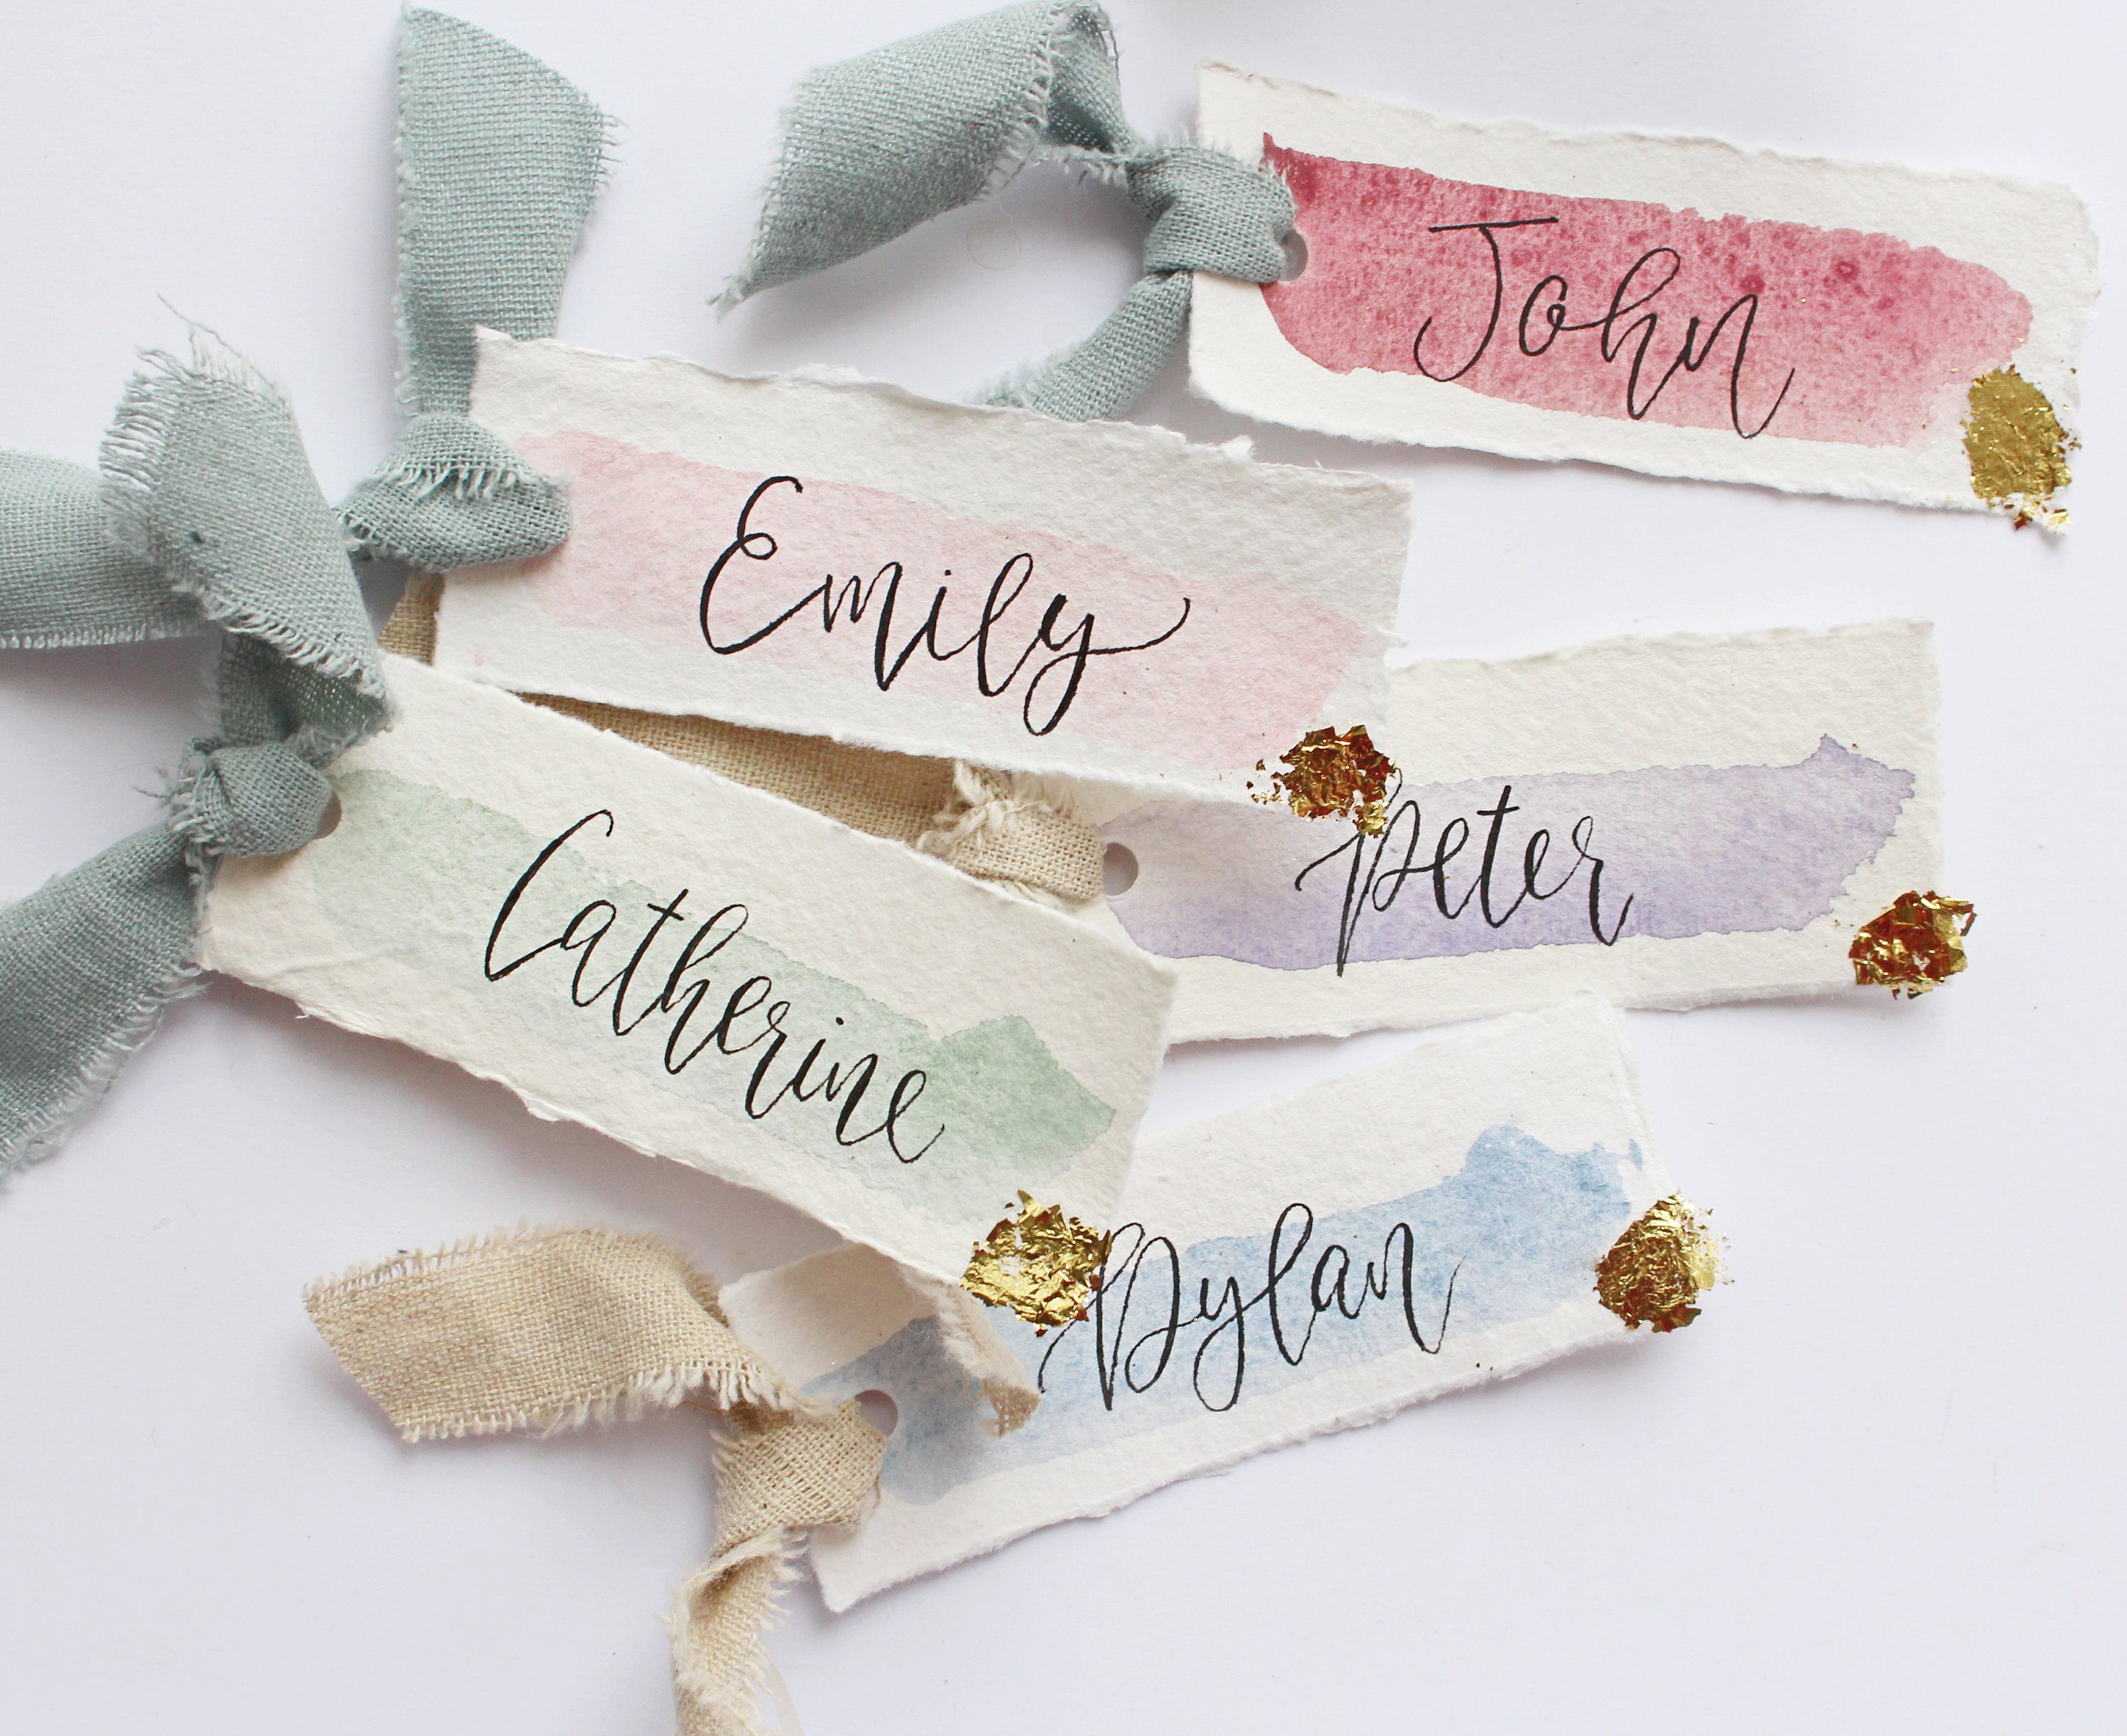 Metallic Gold Place Cards Engagement Party Personalized Place Cards Hand Lettering Gold Tags Wedding Escort Cards Wedding Name Cards